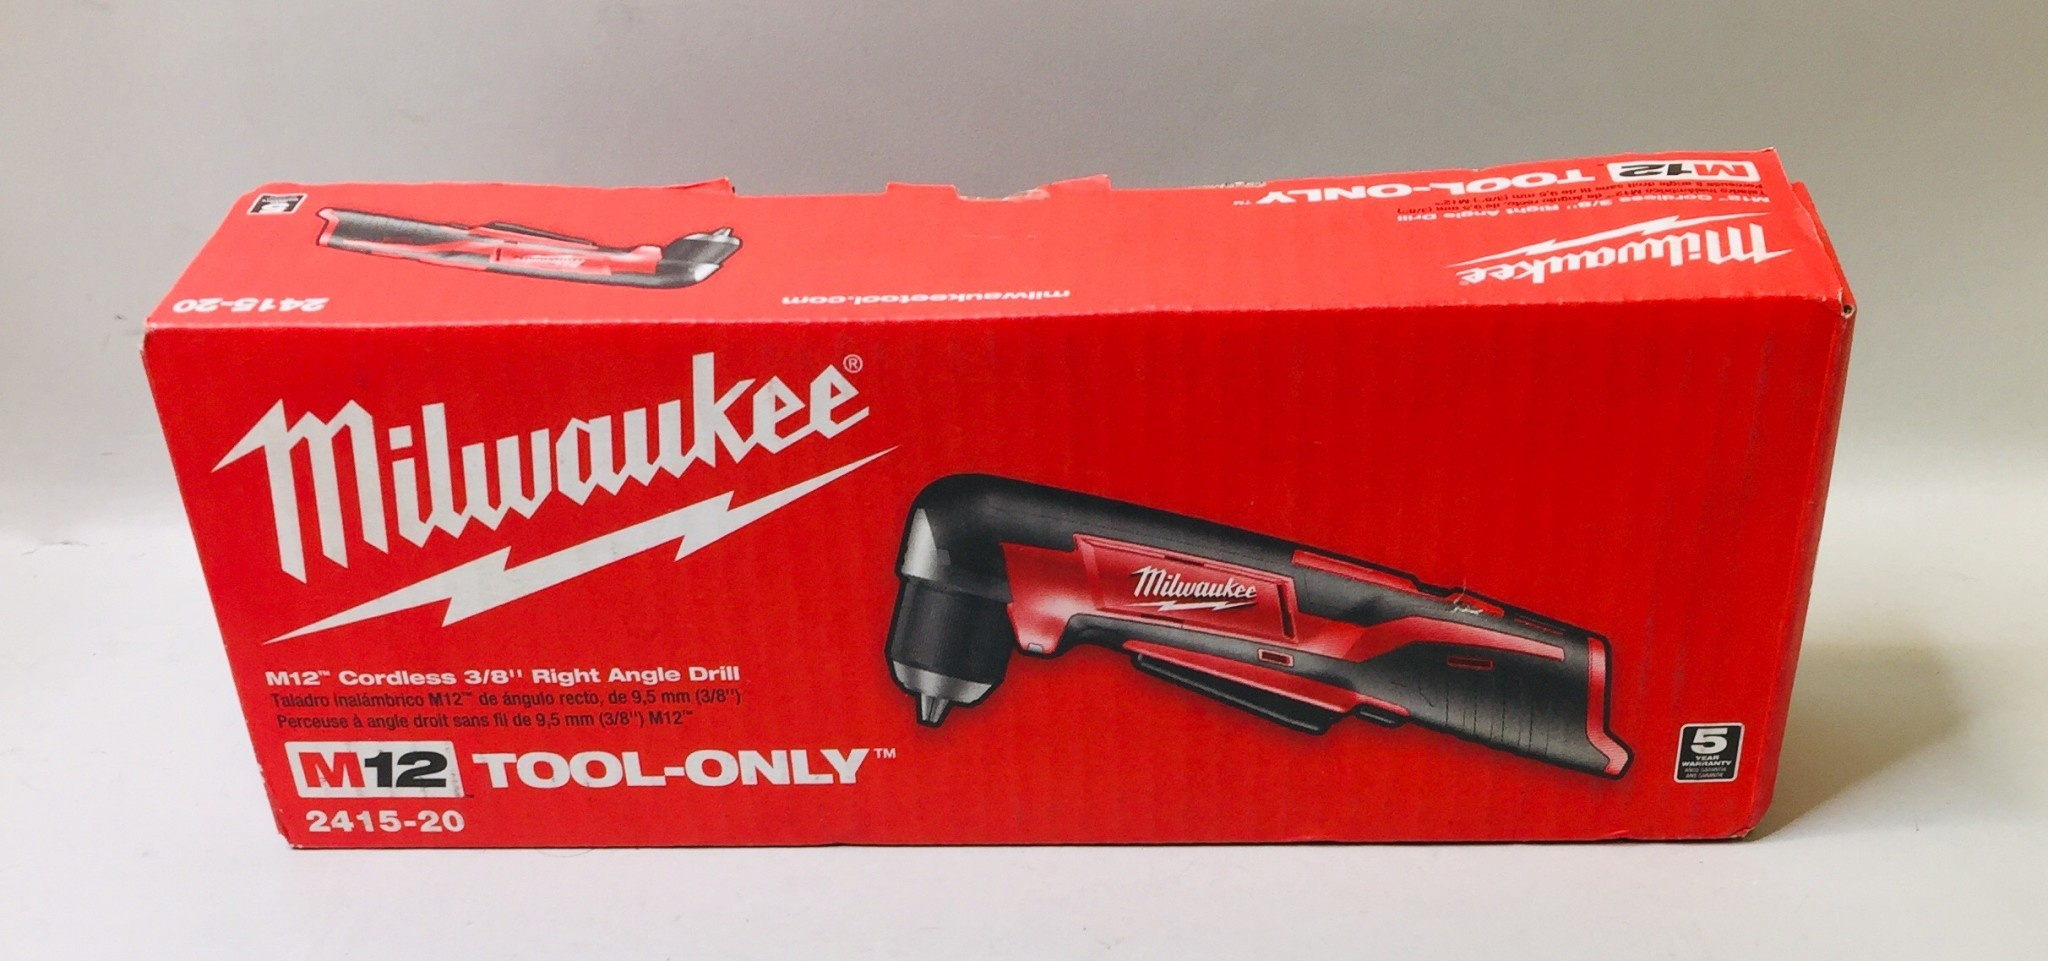 "NEW Milwaukee M12 Cordless 3/8"" Right Angel Drill - 2415-20 - (Tool Only)"